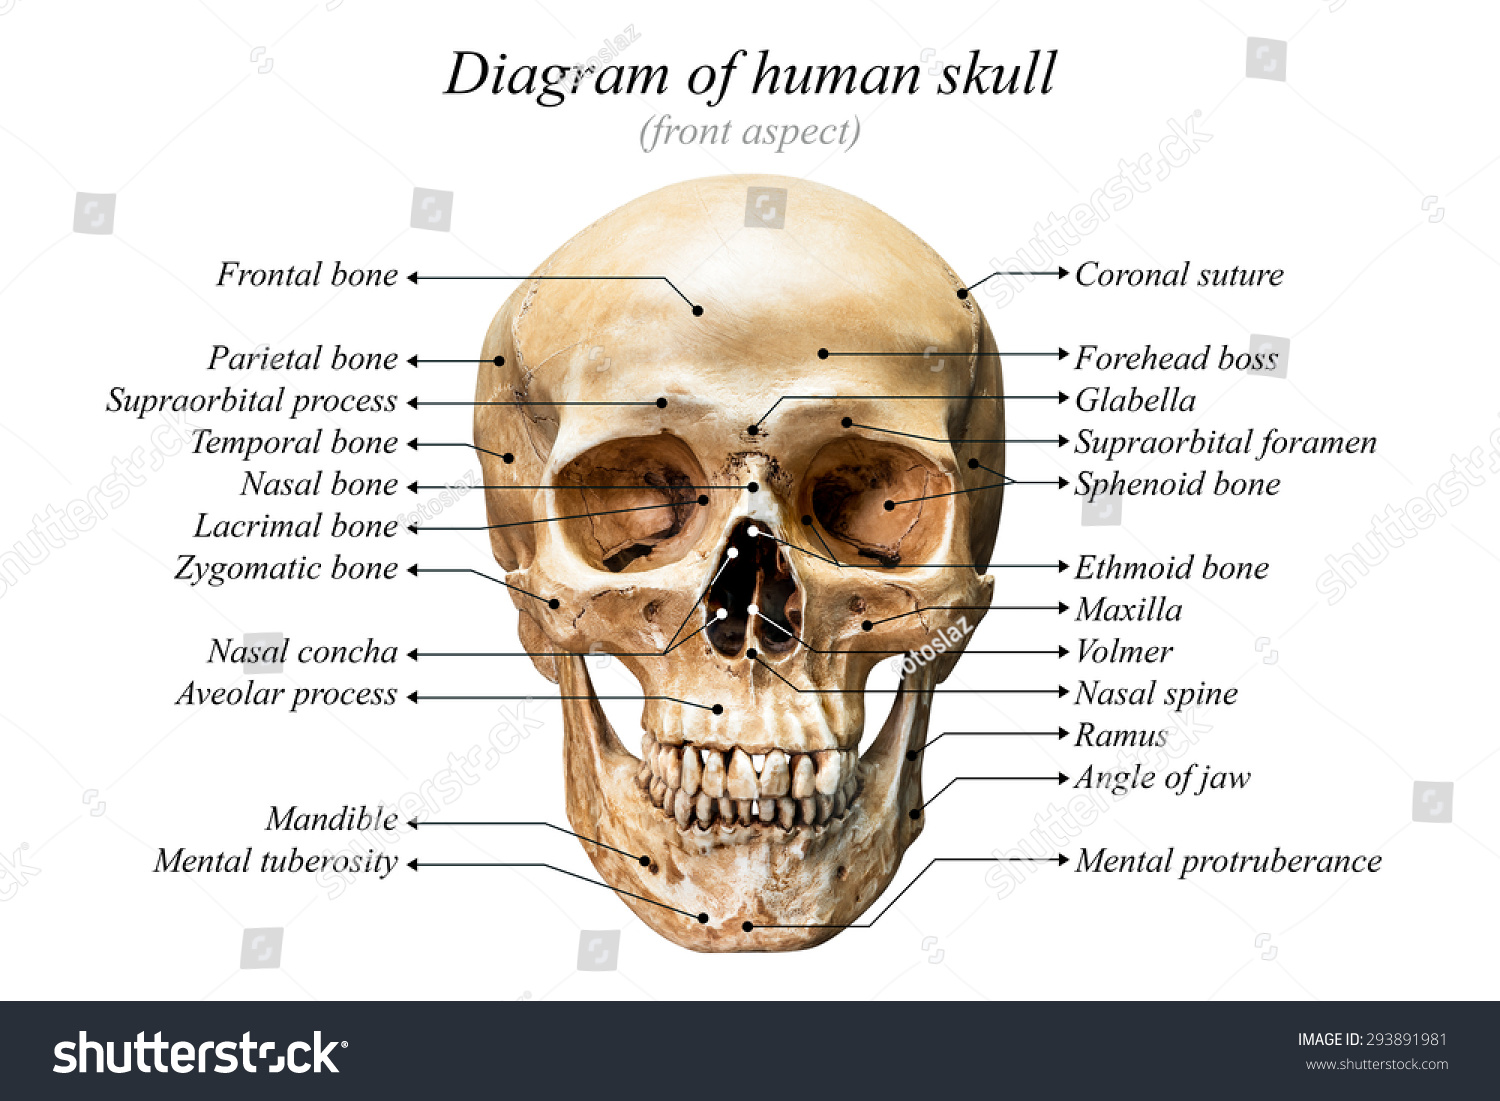 human skull landmarks diagram cricket life cycle front aspect of on white background